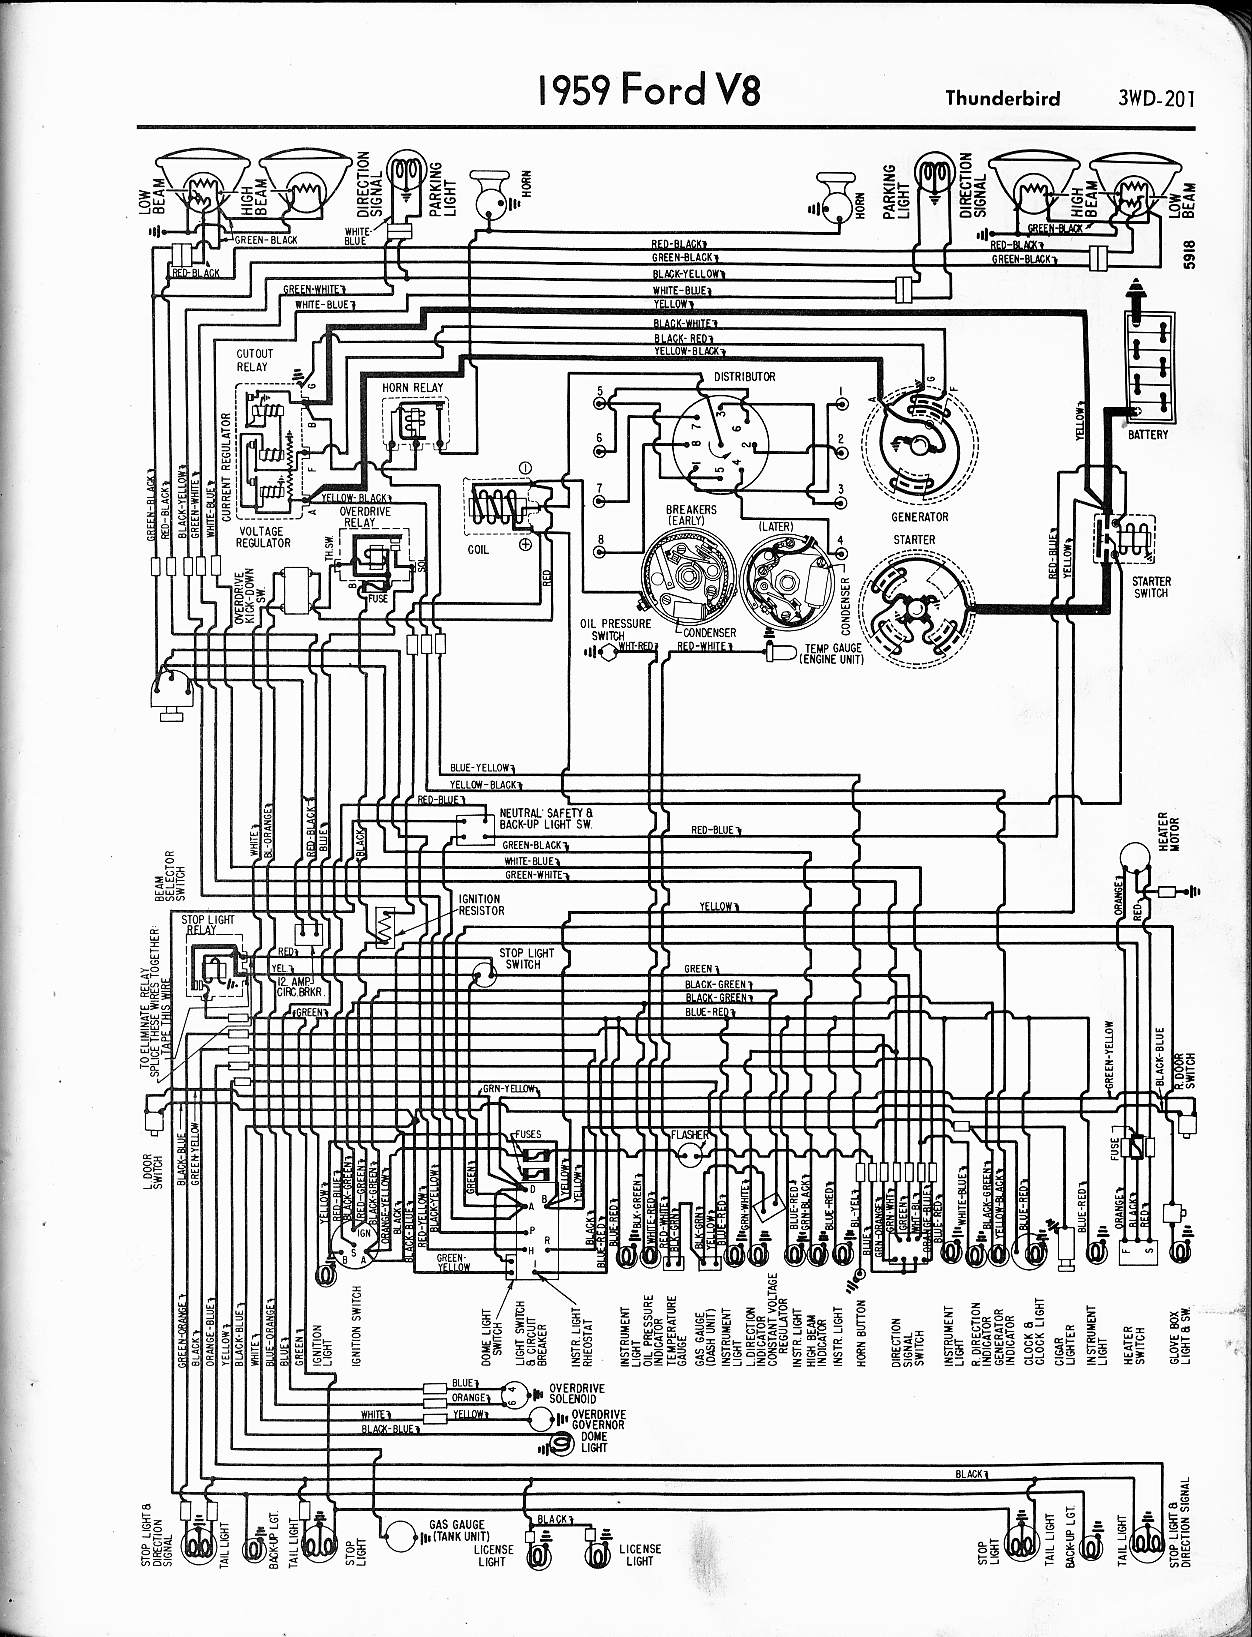 1970 Thunderbird Instrument Cluster Diagram Wiring Schematic 1970 Corvette Wiring  Diagram 1970 Thunderbird Instrument Cluster Diagram Wiring Schematic